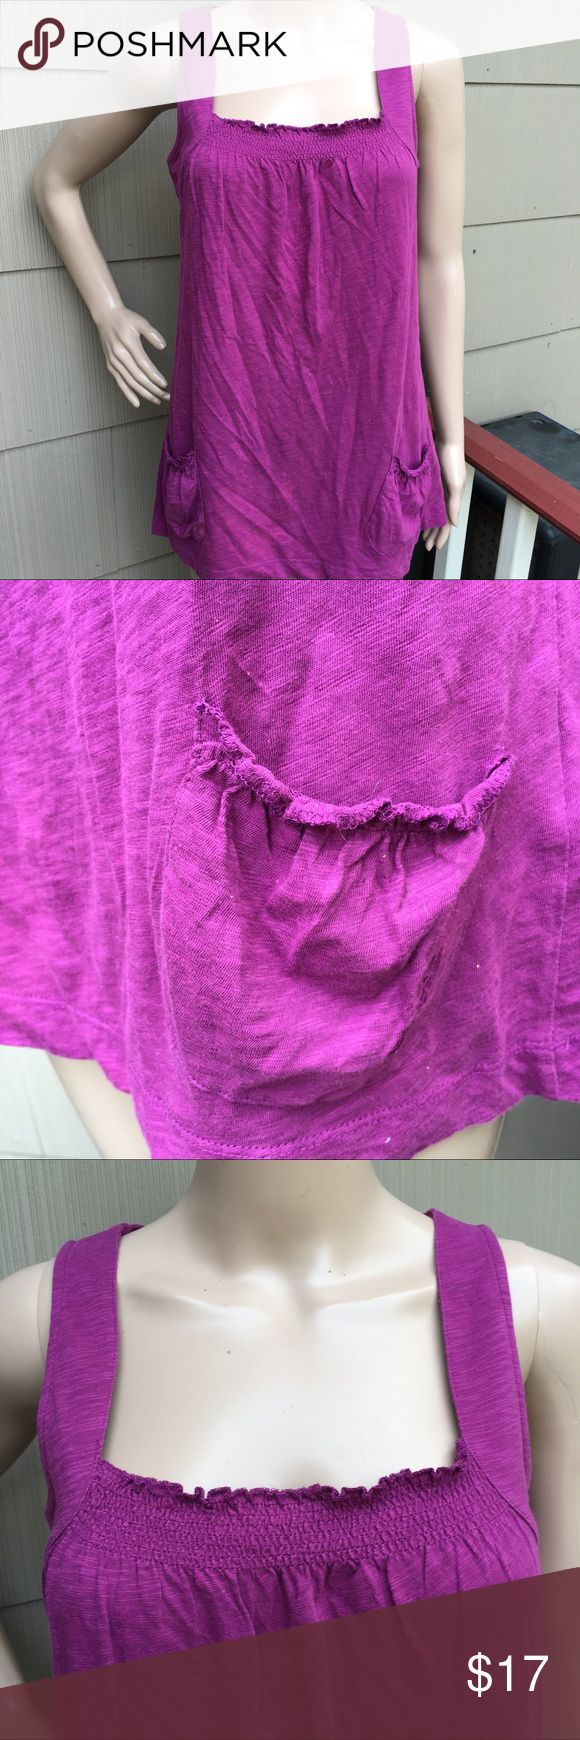 """Esprit smocked pocket tank top The color is more purple than it shows in the pictures. Smocked front 2 open pockets at the bottom. Soft cotton. In excellent condition! 18"""" pit to pit x 27"""" long Esprit Tops Tank Tops"""